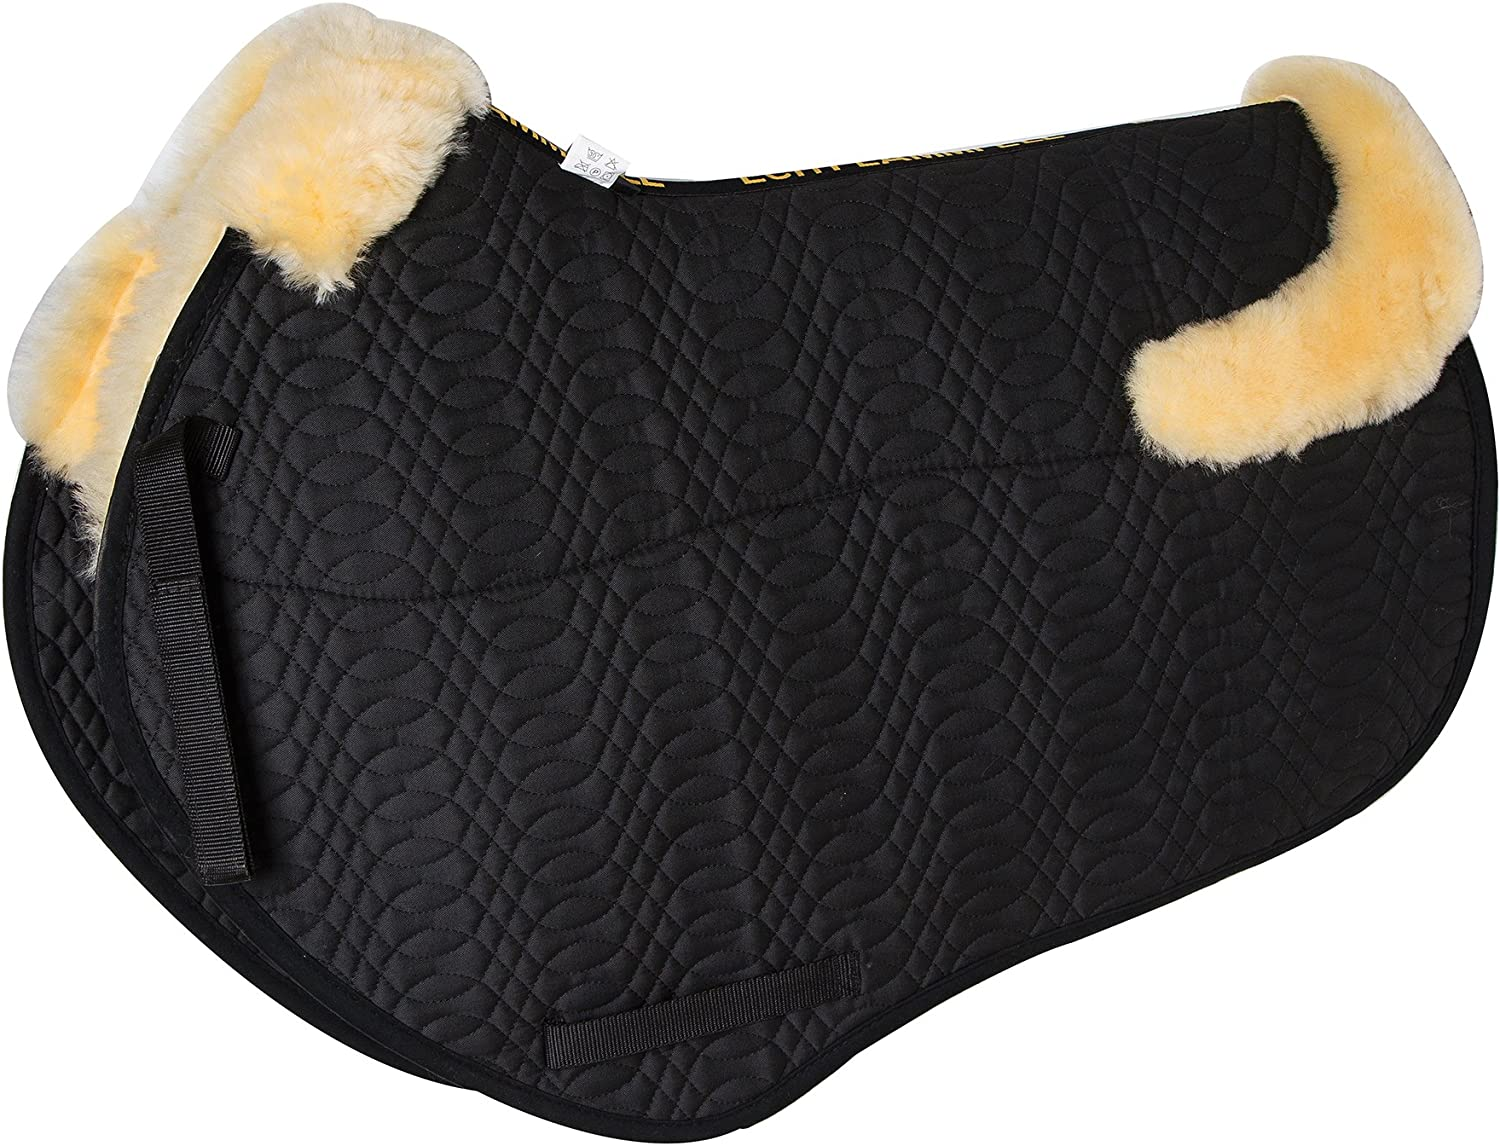 Merauno Sheepskin GP Saddle Pad Full Blanket